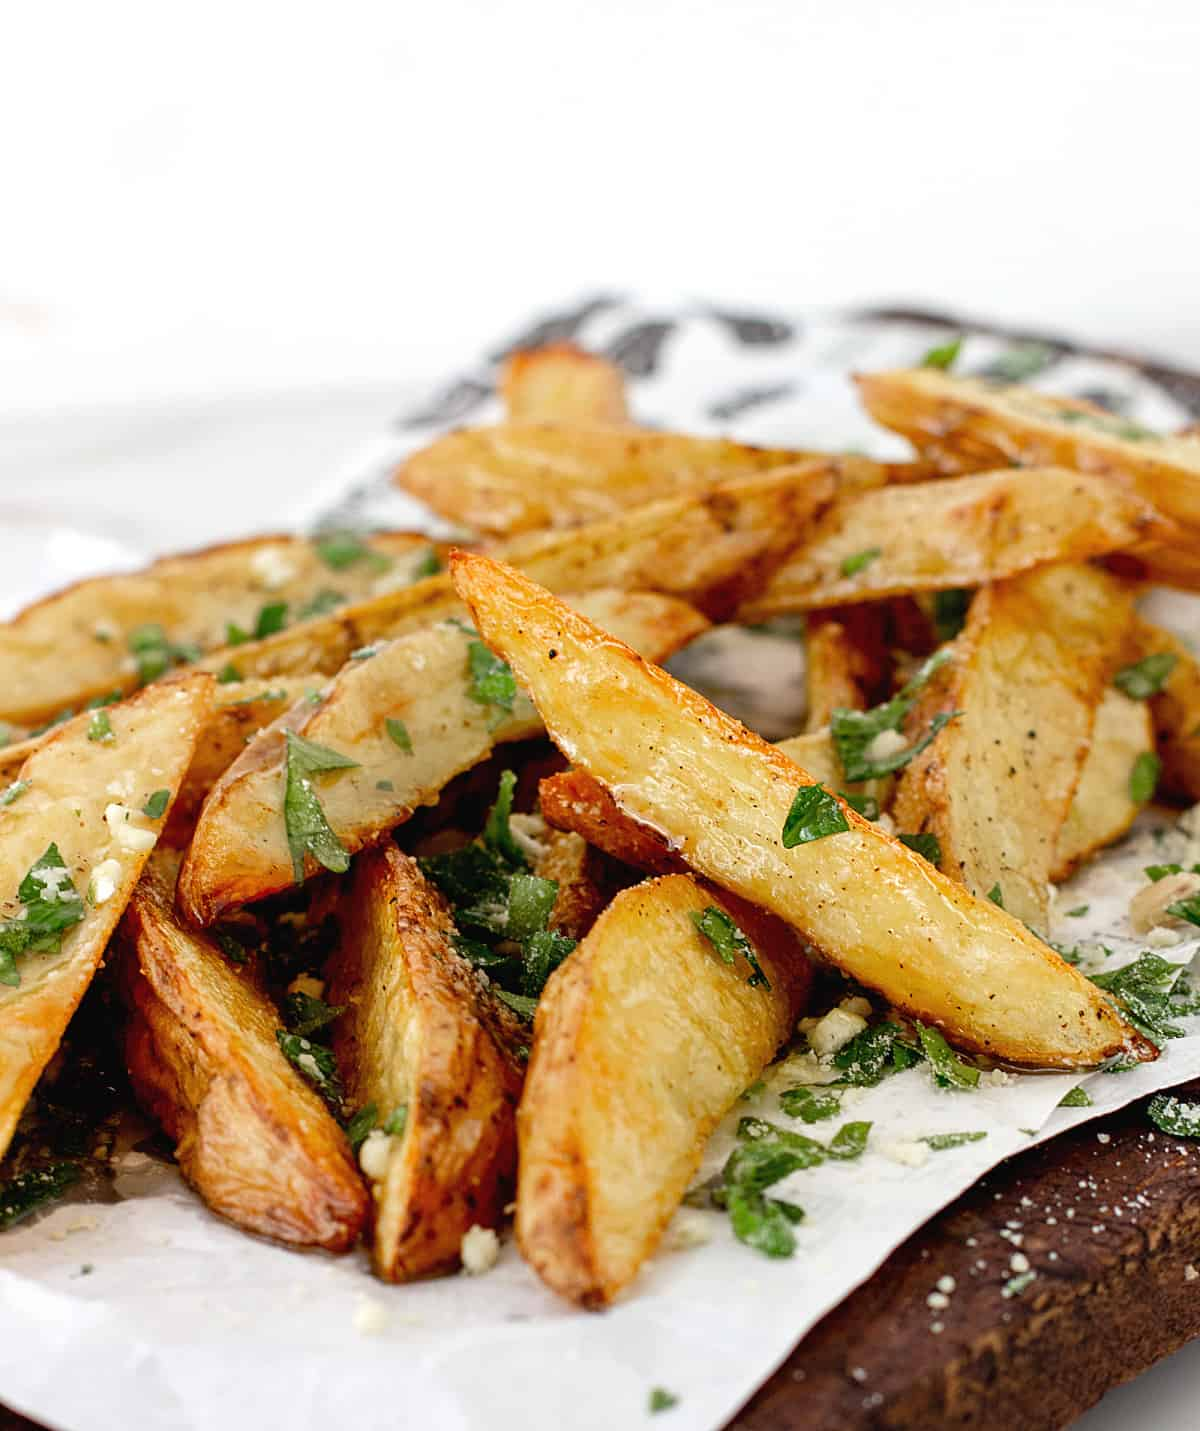 Mound of potato wedges with parsley on white paper